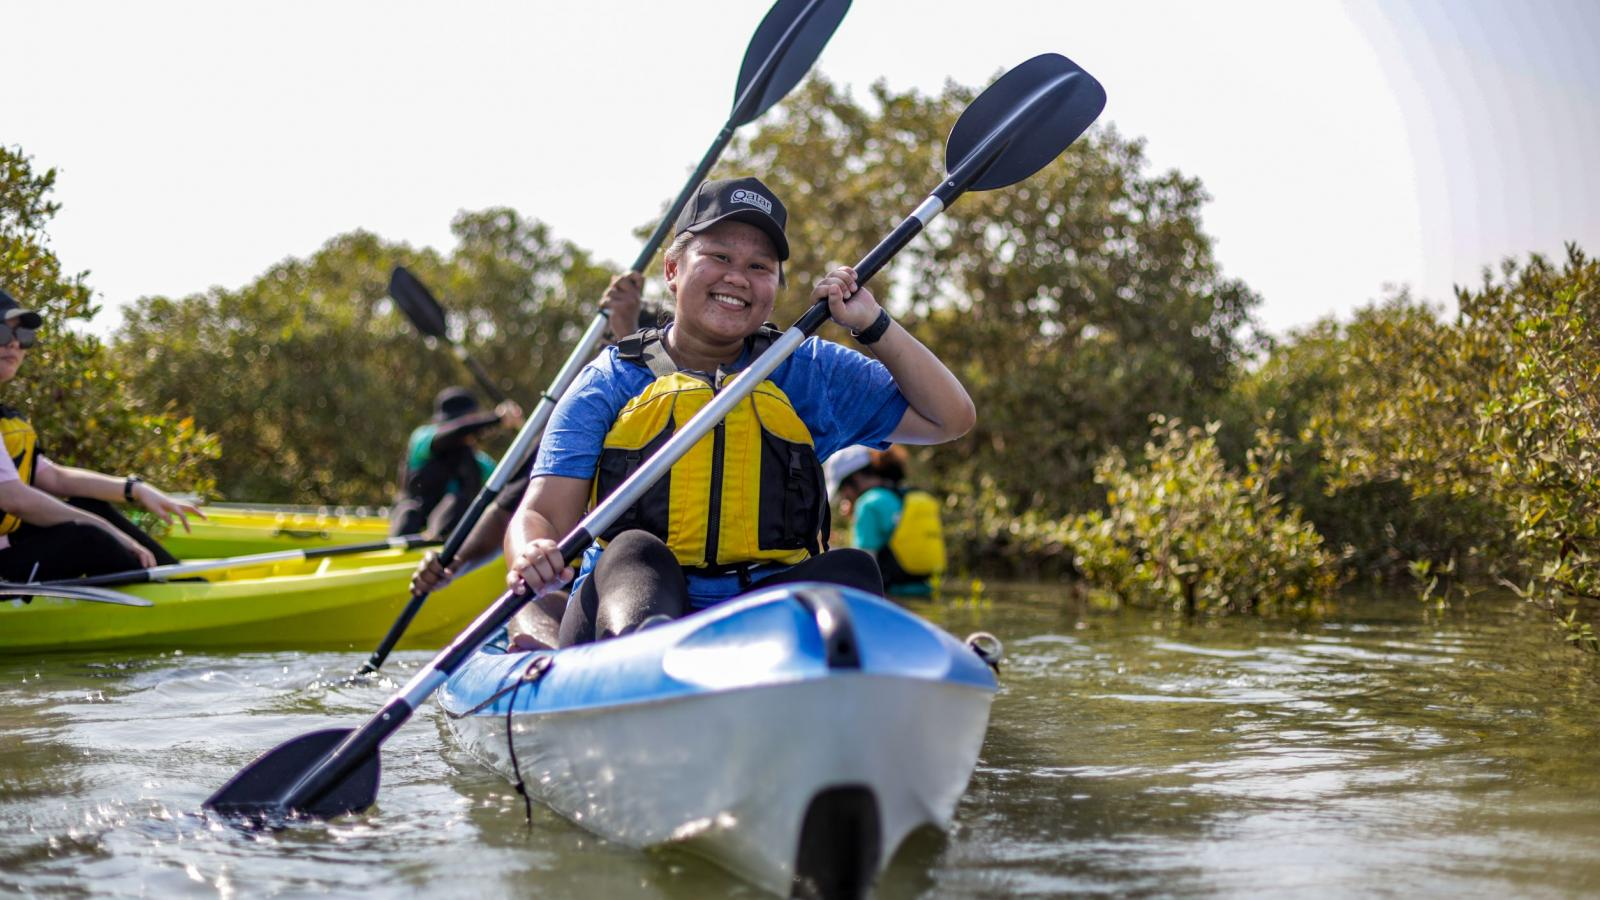 Immerse yourself in Qatar's nature with 365 Adventures' Al Mafjar Mangrove kayaking tour